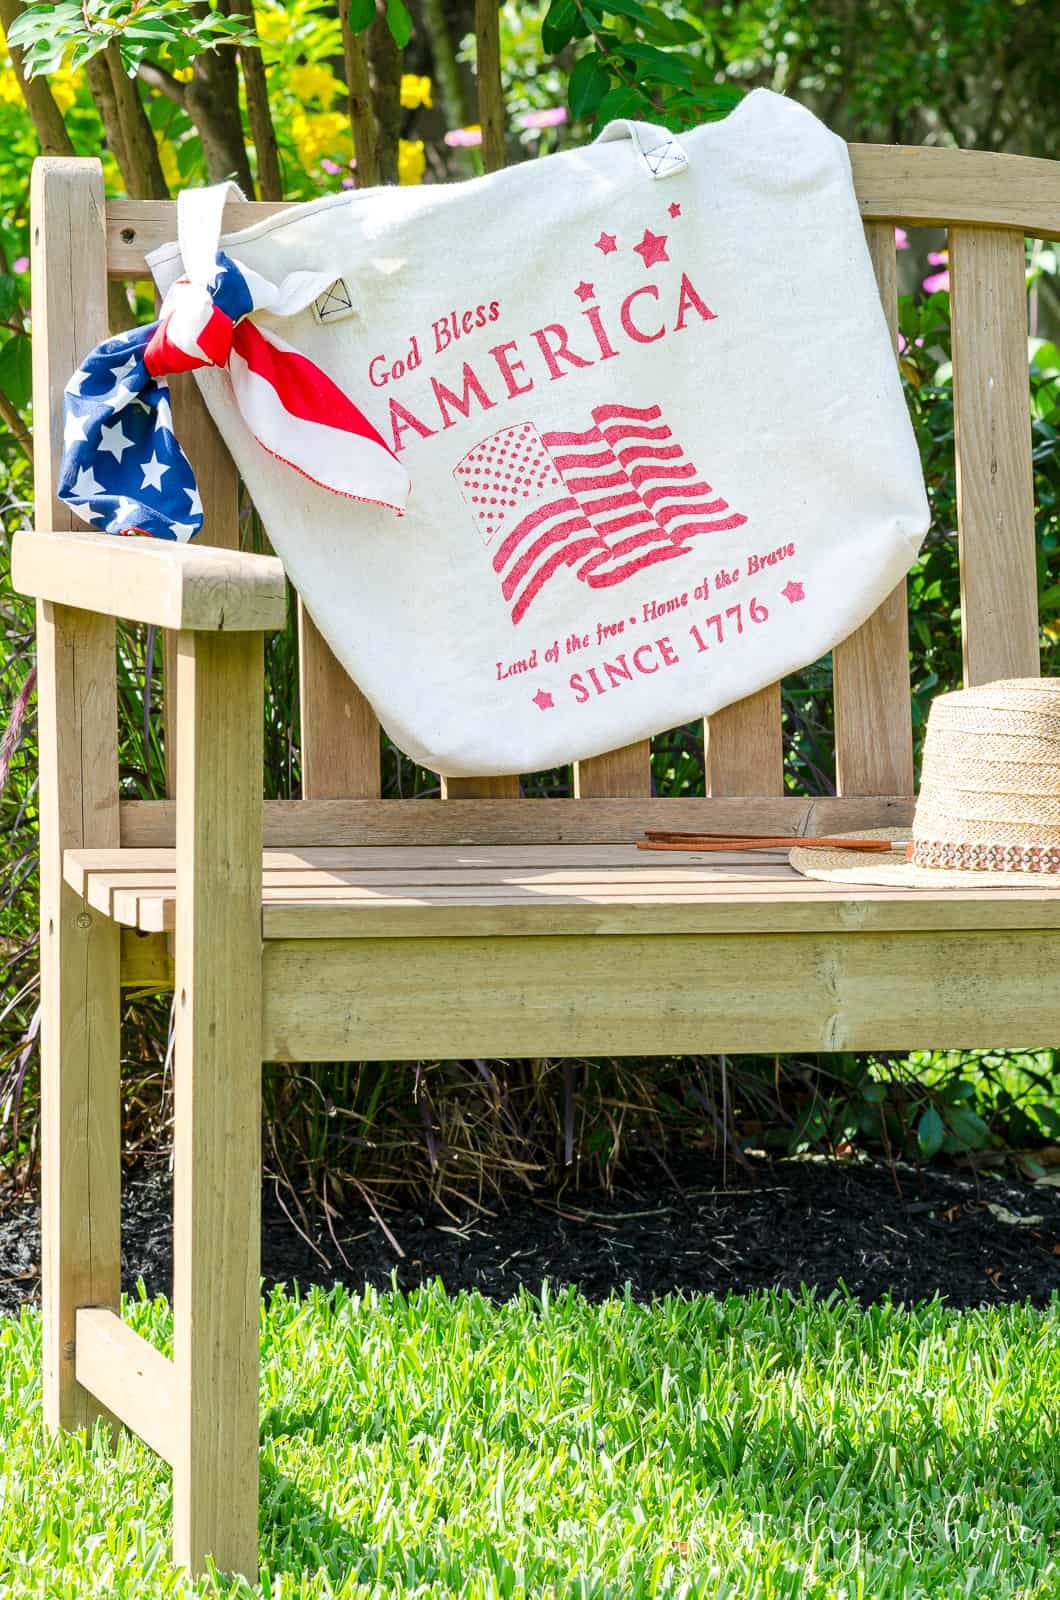 Hand painted canvas bag with patriotic stencil on bench